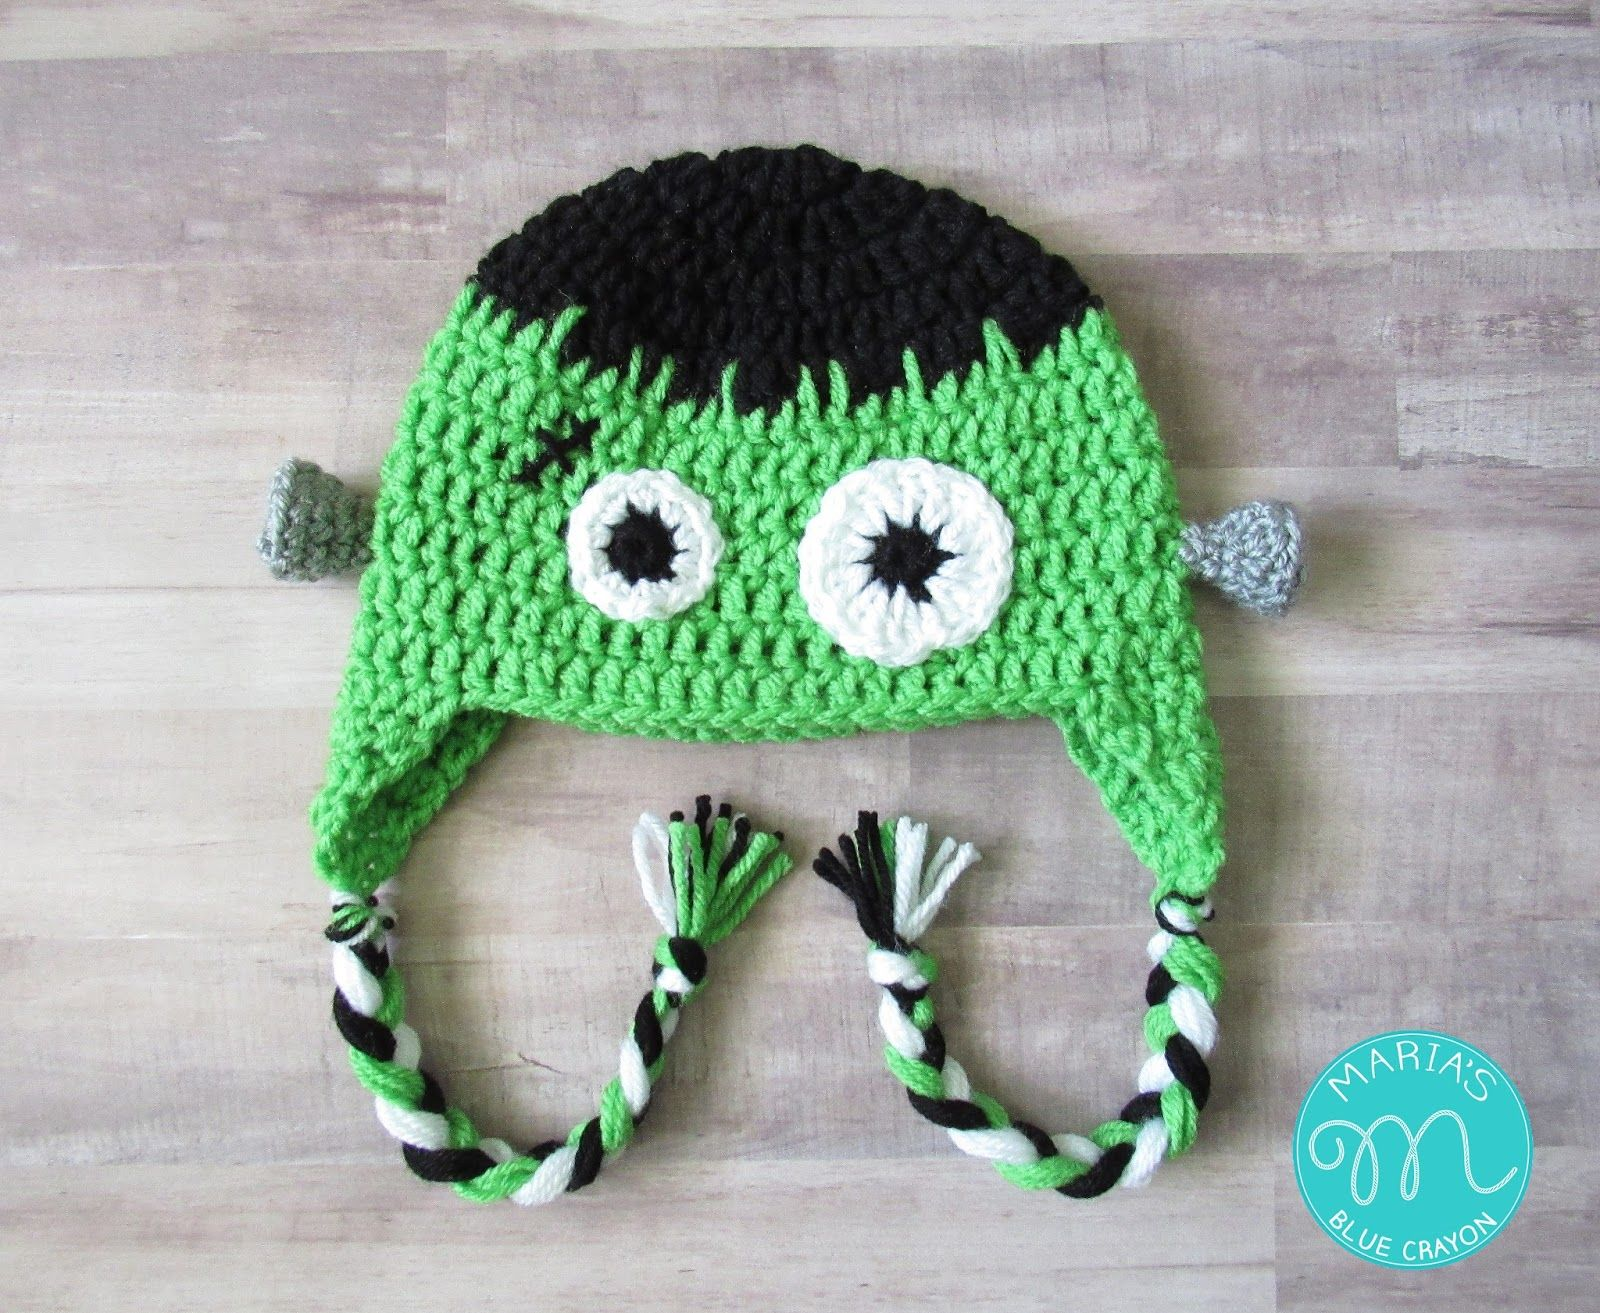 Frankenstein hat crochet pattern crochet halloween costumes frankenstein hat crochet pattern halloween costumeskids bankloansurffo Image collections